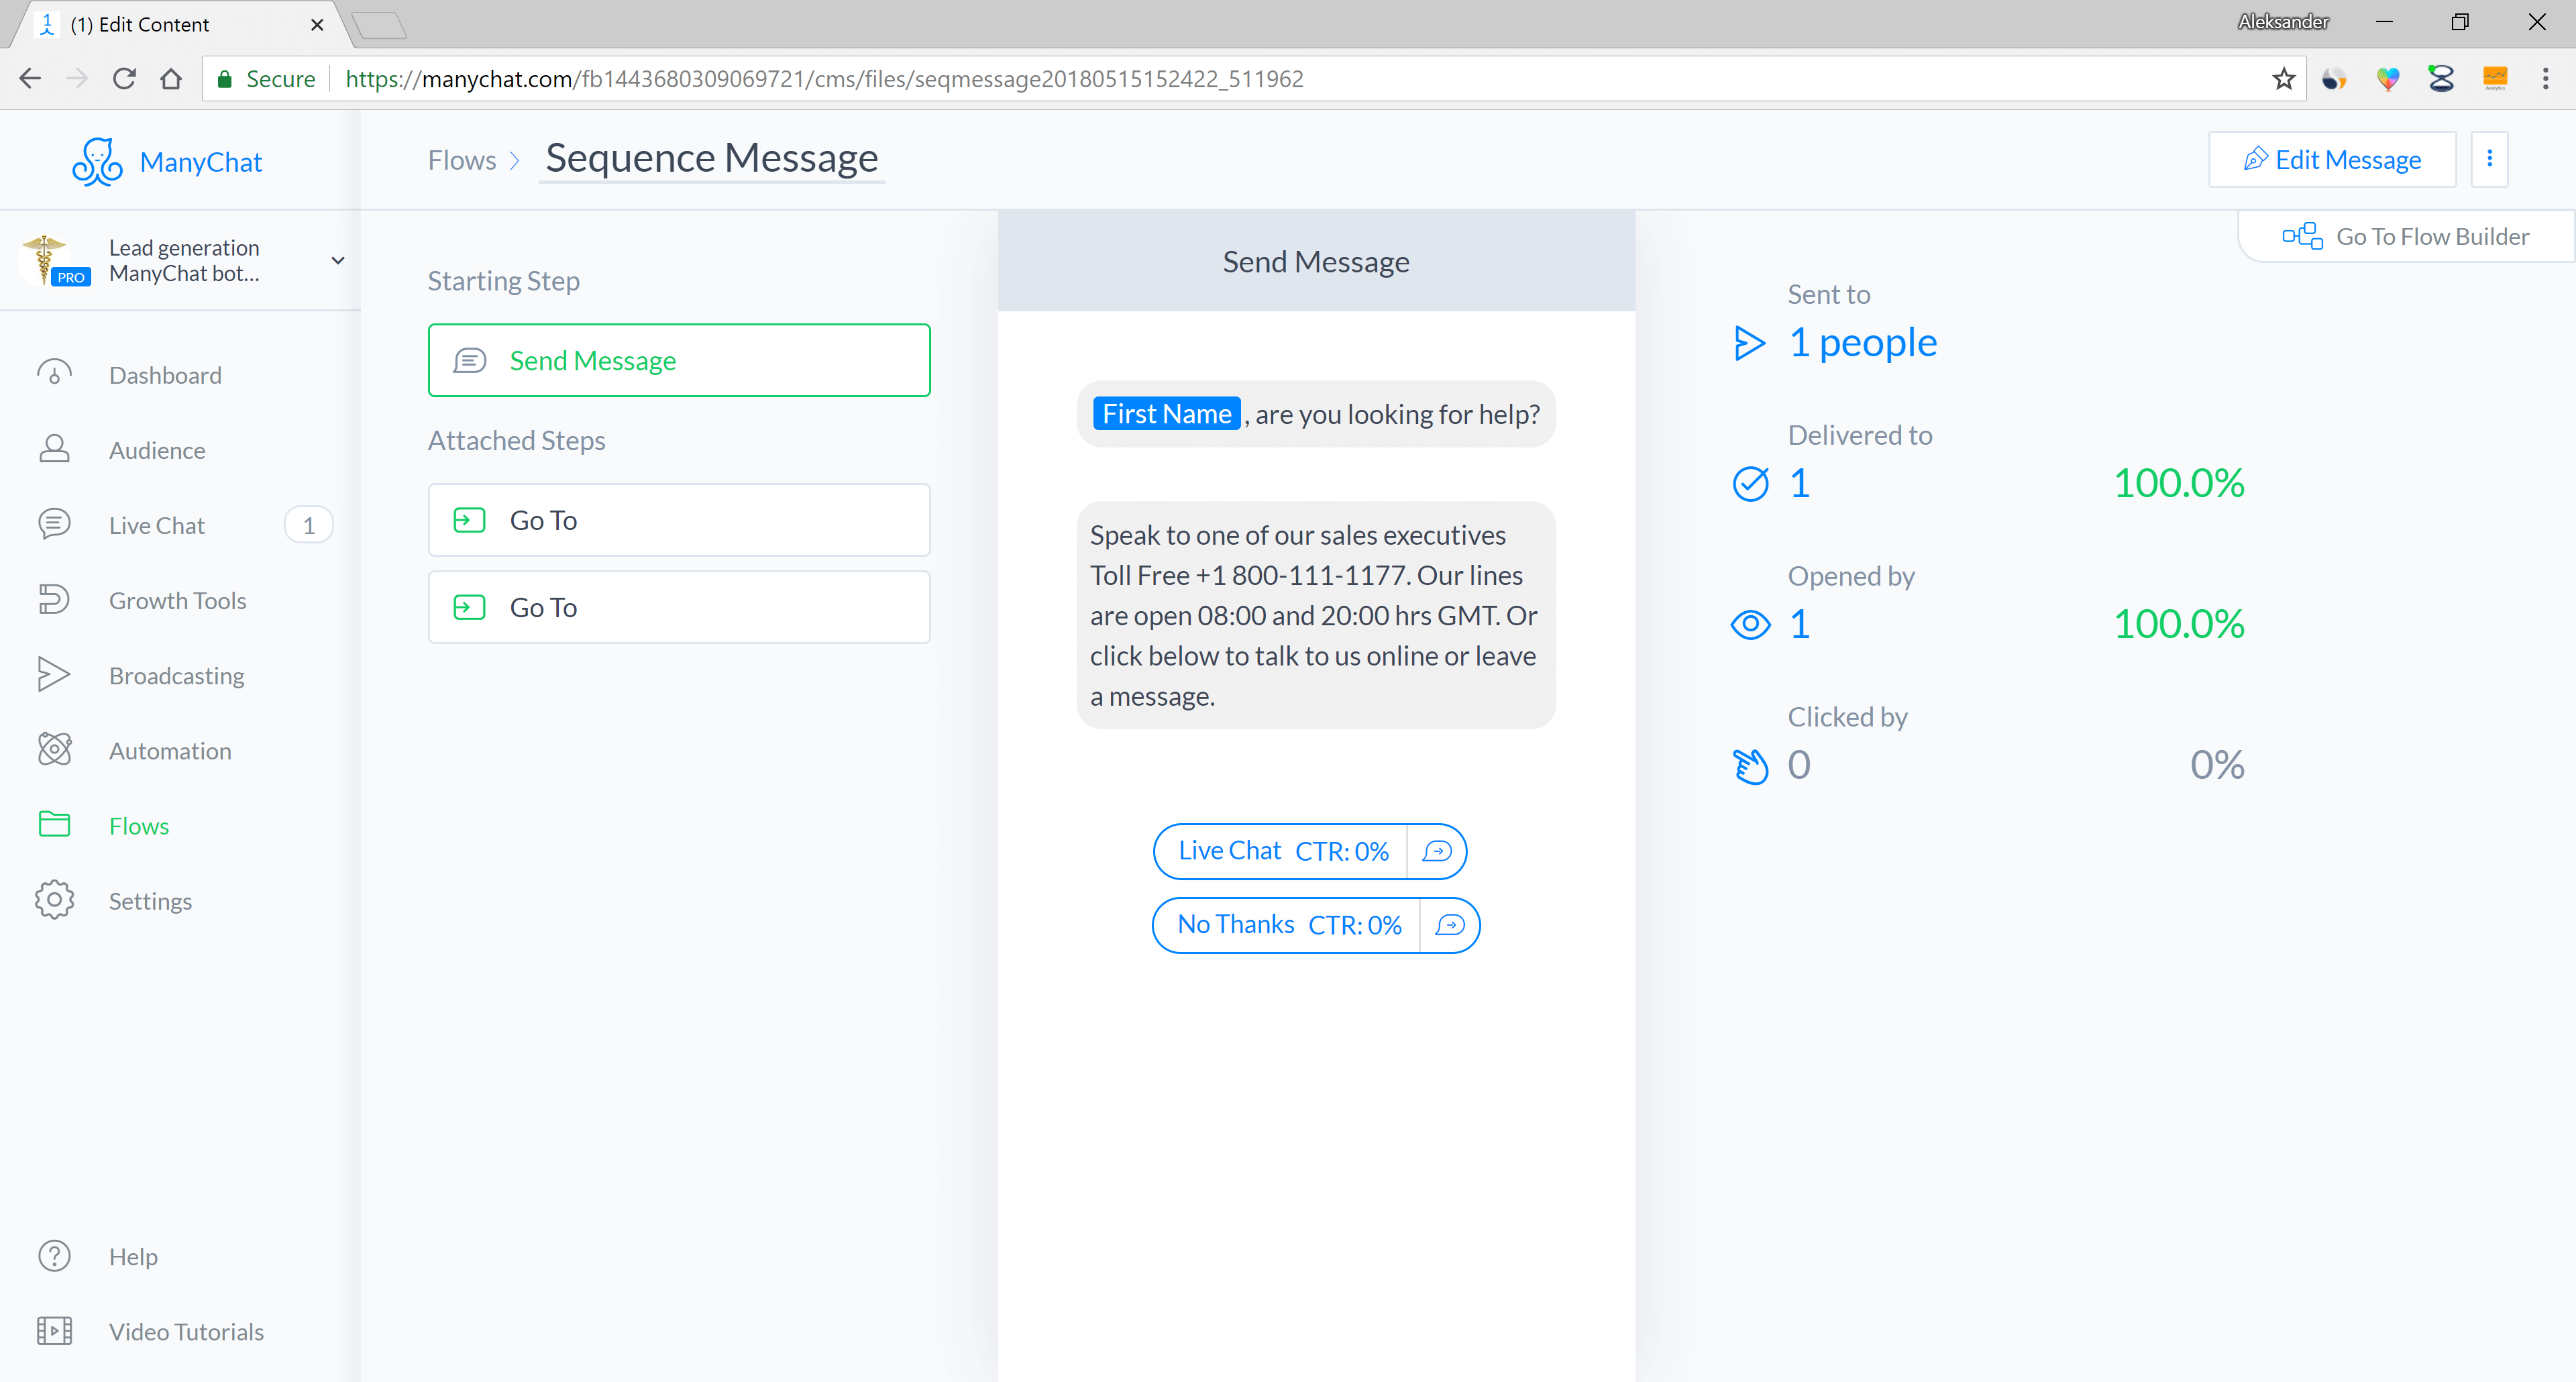 Chatfuel and ManyChat flow editor screenshot for Lead Generation Messenger Bot for Insurance Companies